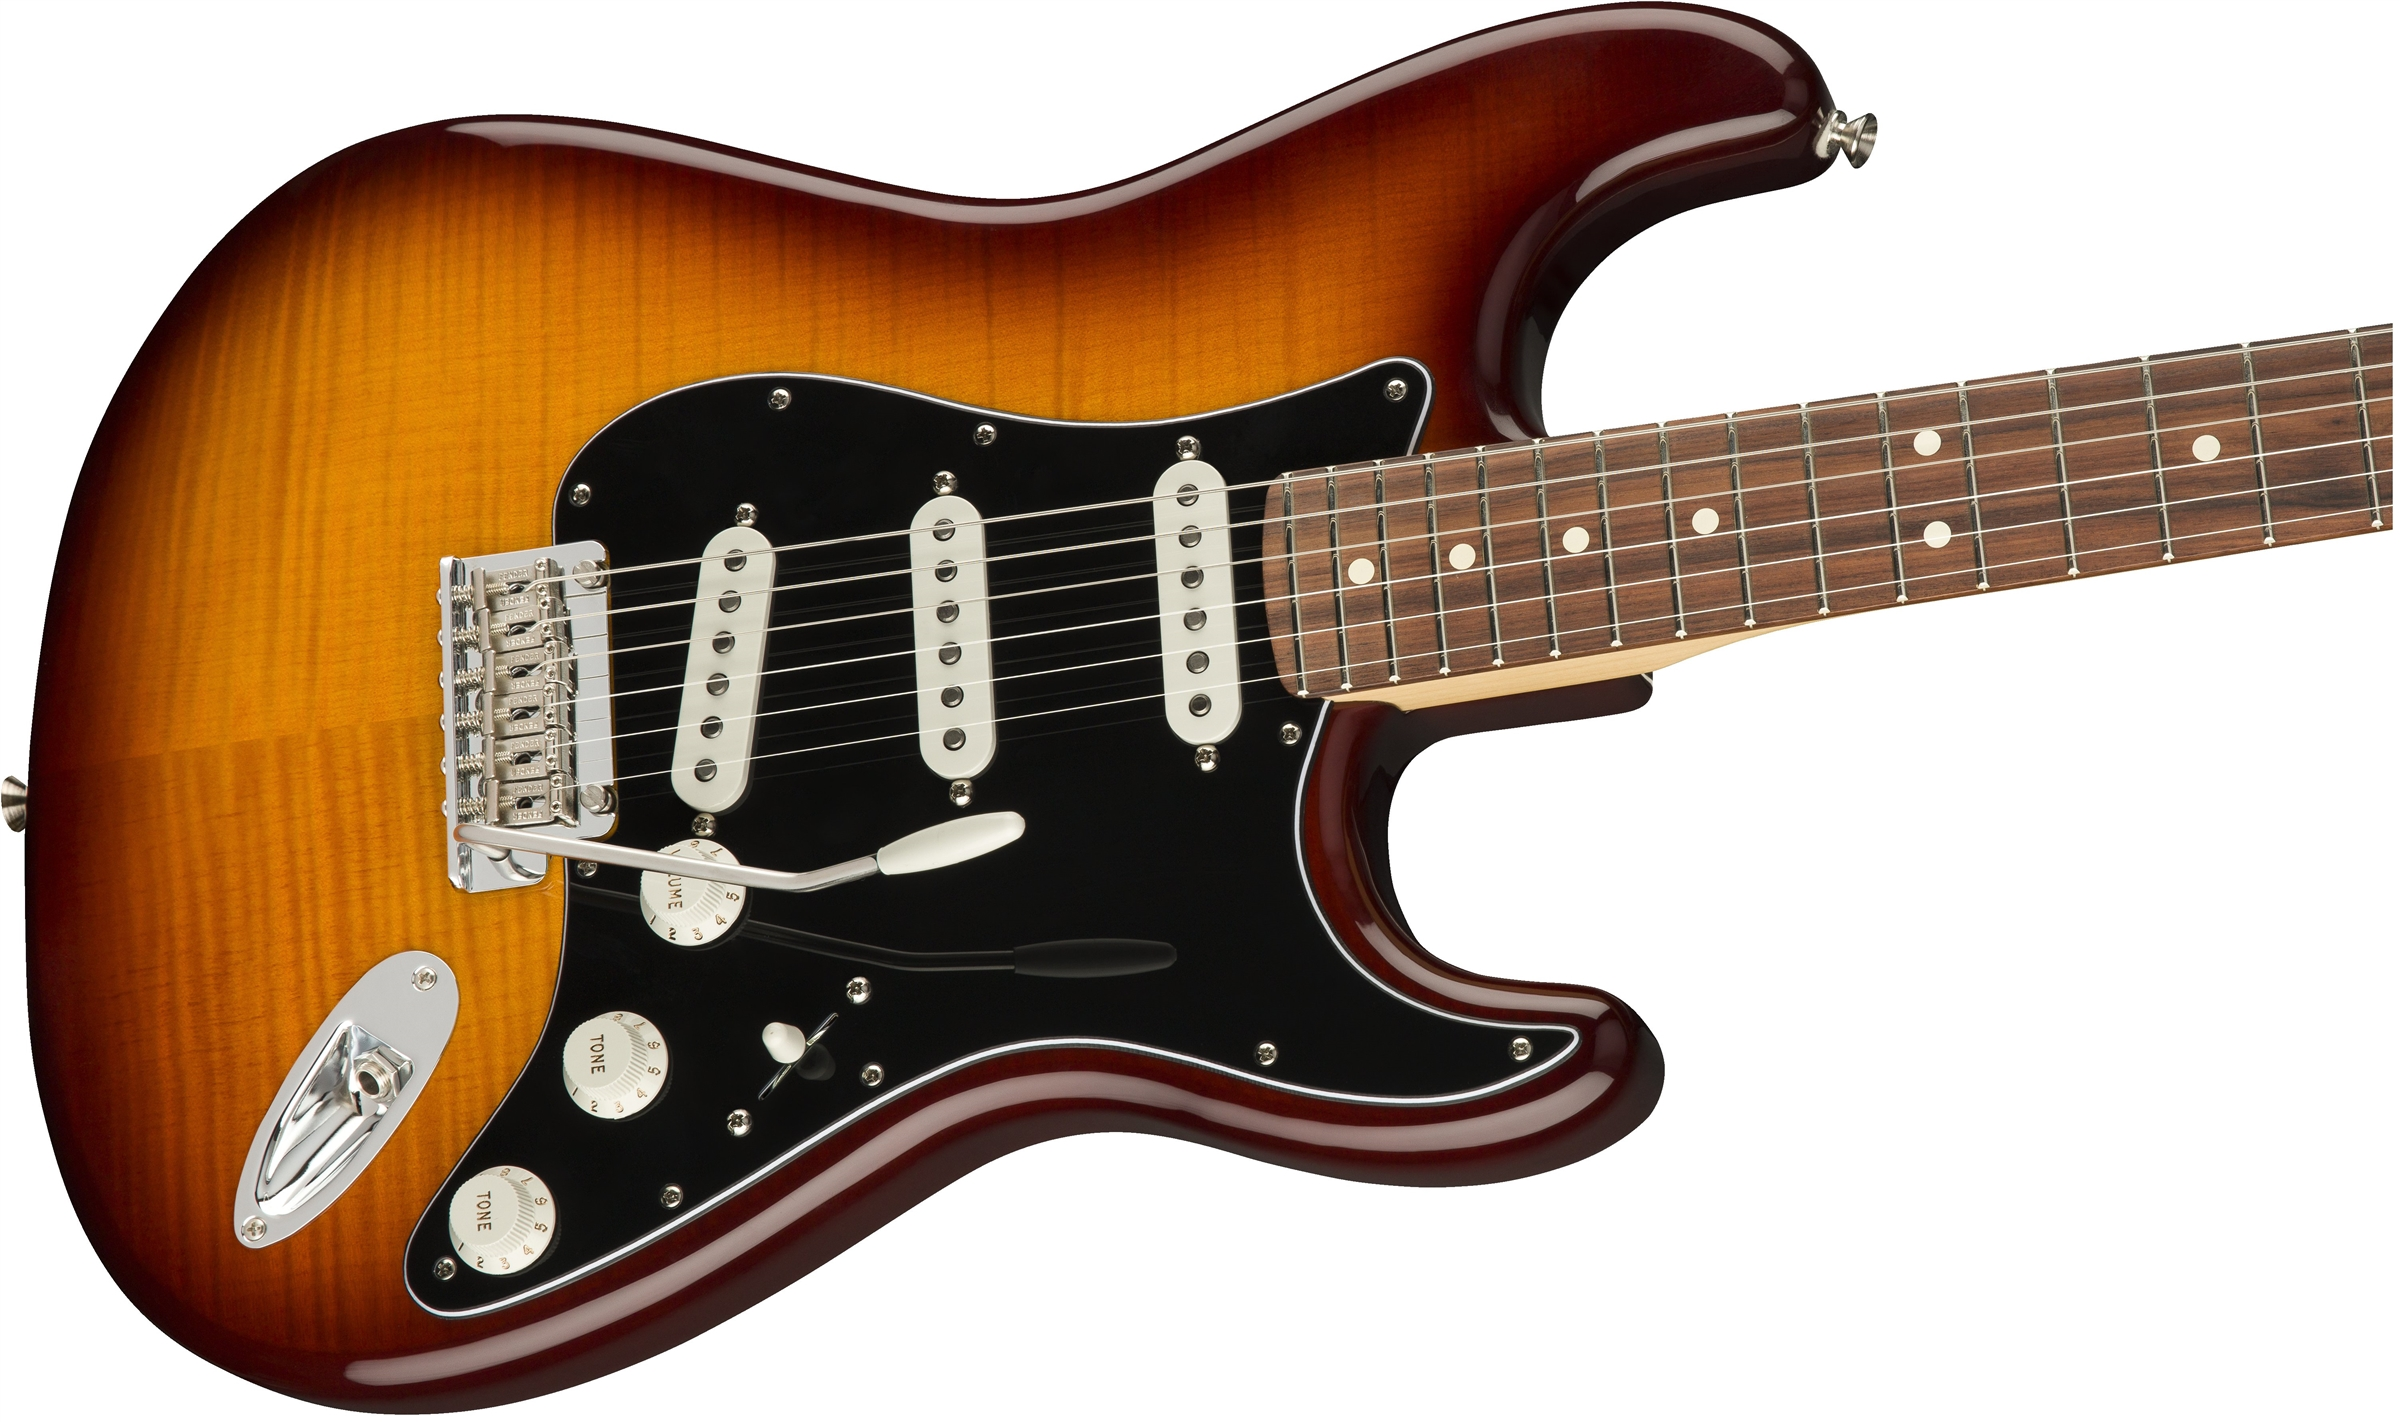 Fender Player Stratocaster® Plus Top, Pau Ferro Fingerboard, Tobacco Fender  Strat Texas Special Wiring Diagram Fender Deluxe Players Stratocaster Wiring